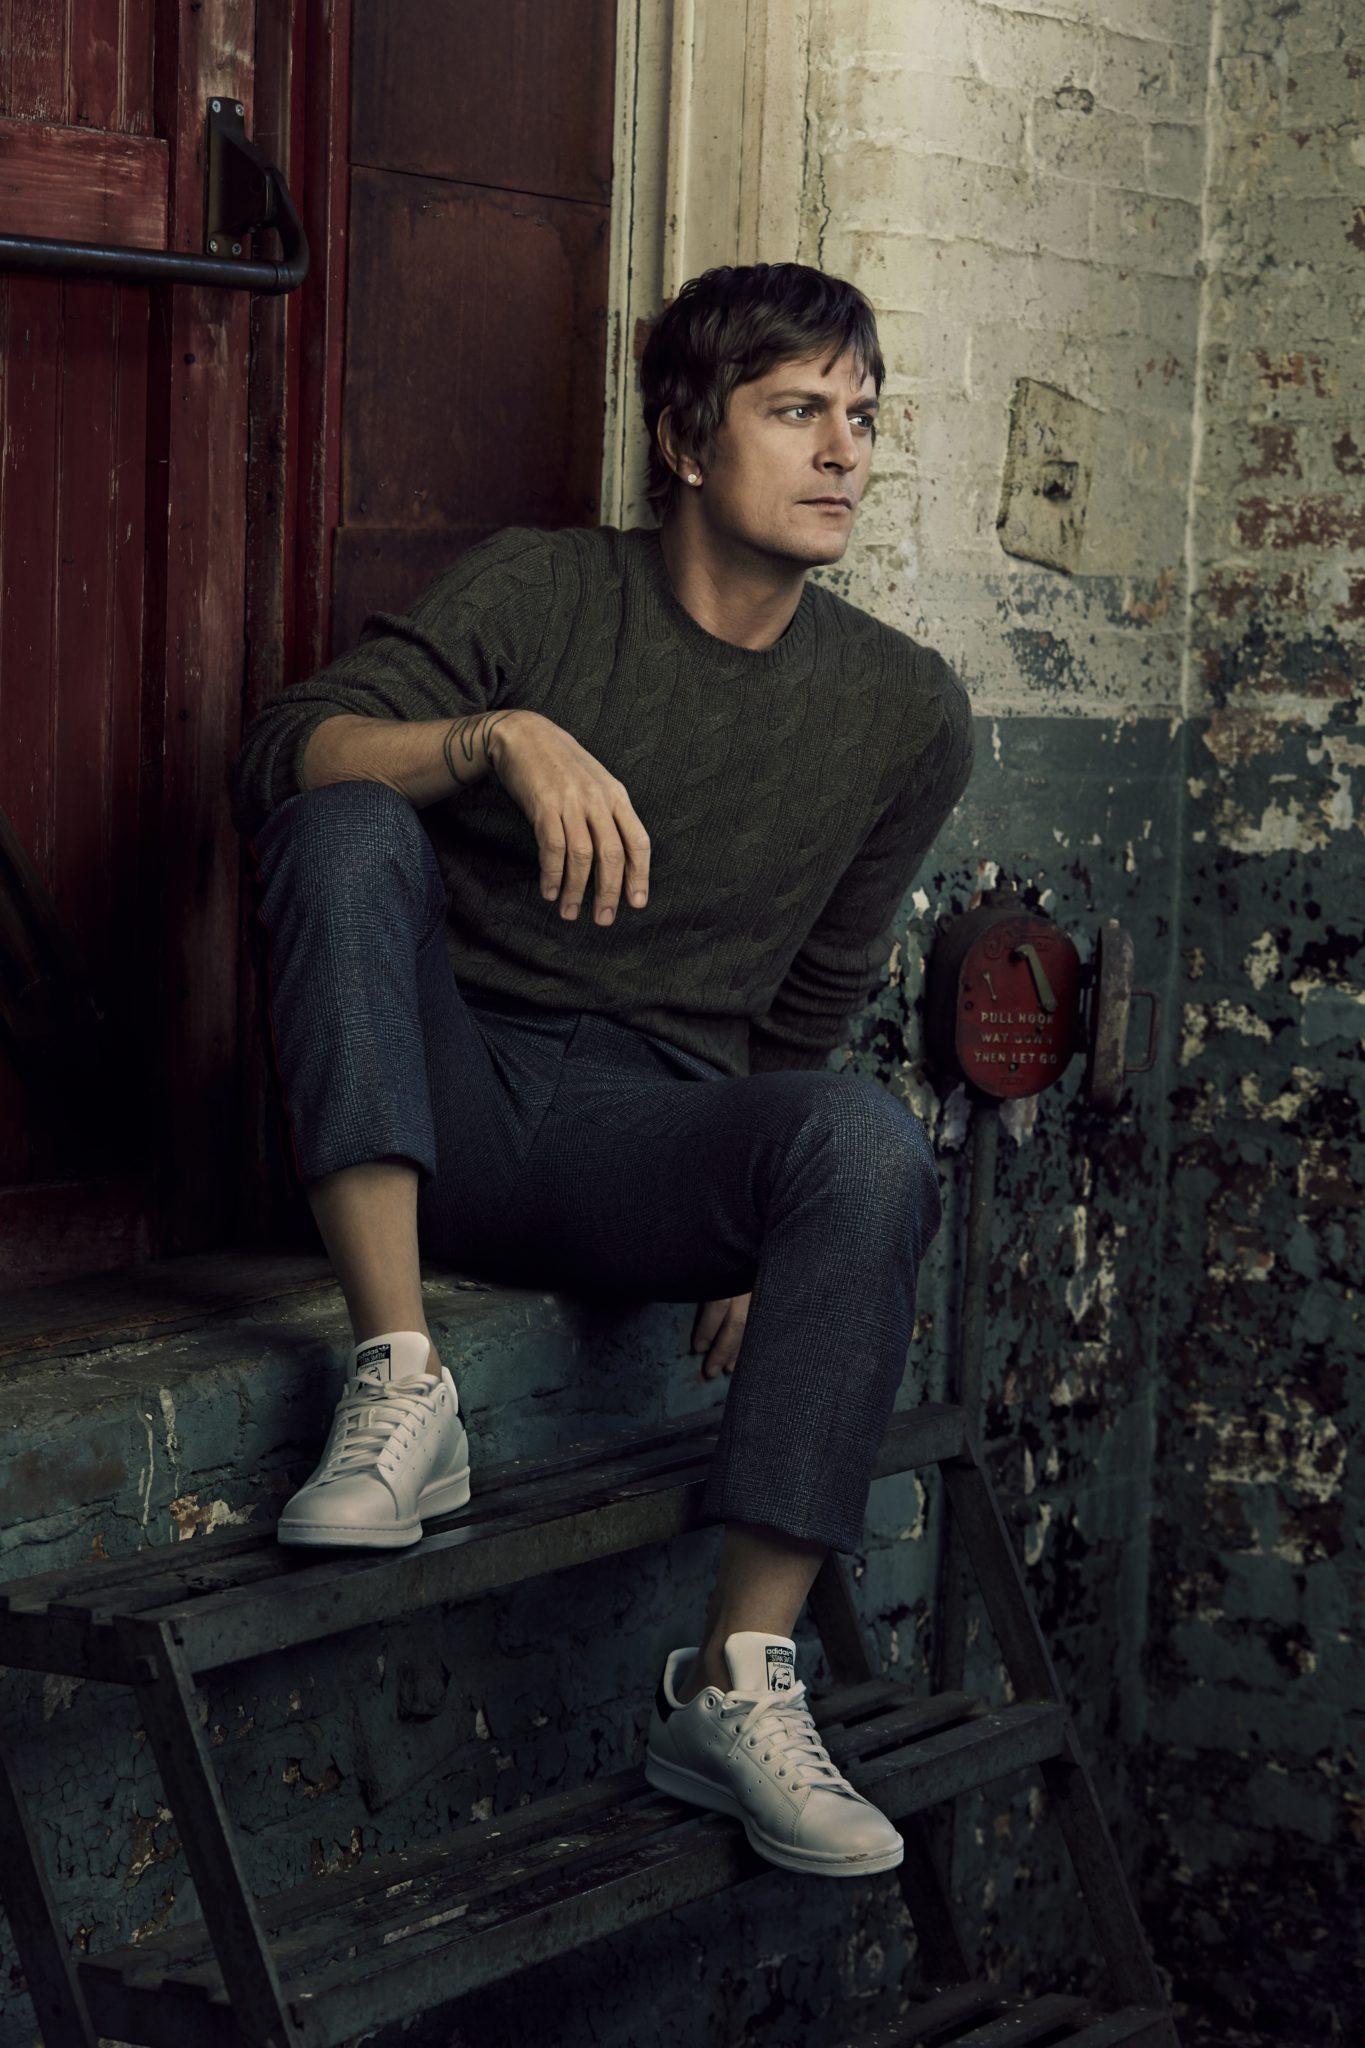 ROB THOMAS ANNOUNCES INTIMATE AT-HOME CONCERT BENEFITTING SIDEWALK ANGELS FOUNDATION